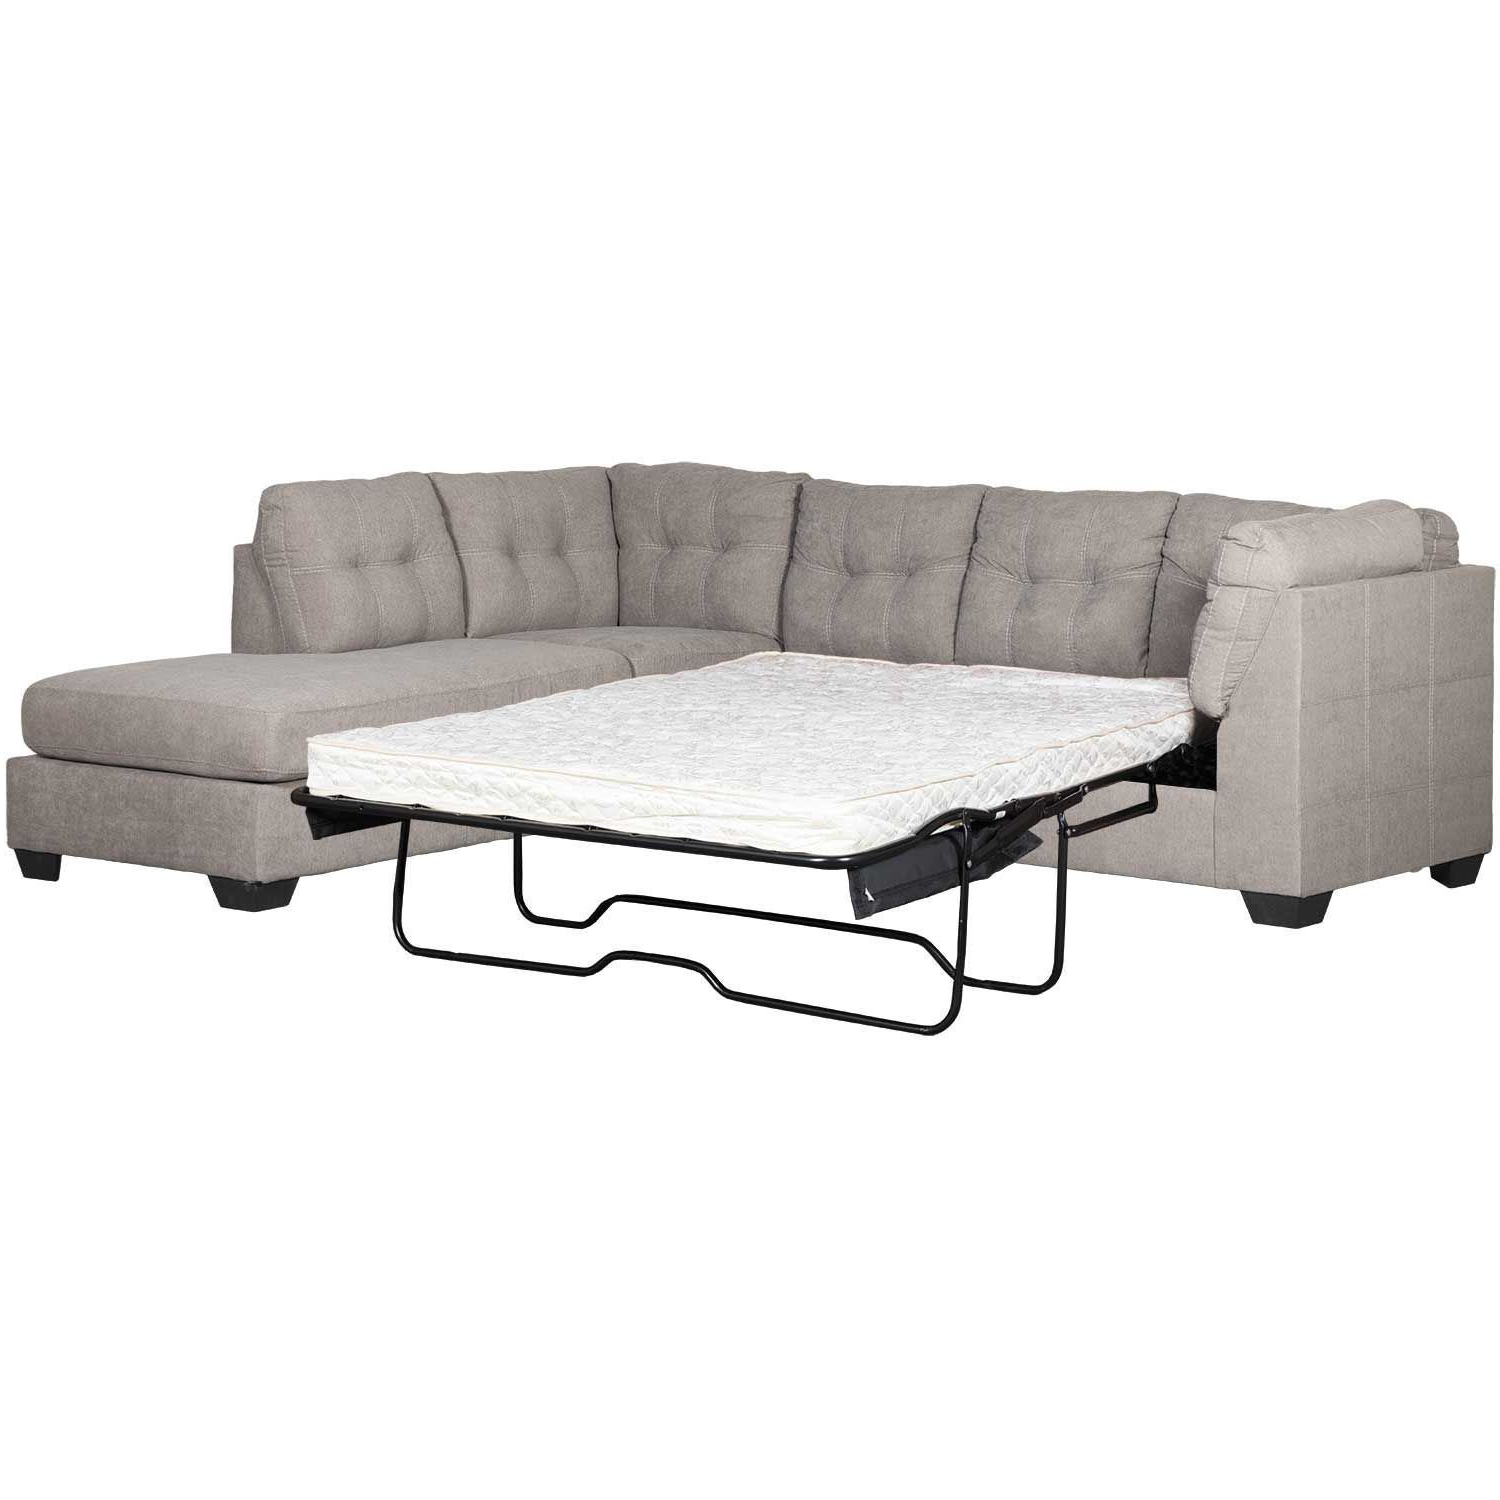 Sleeper Sectional (View 16 of 20)